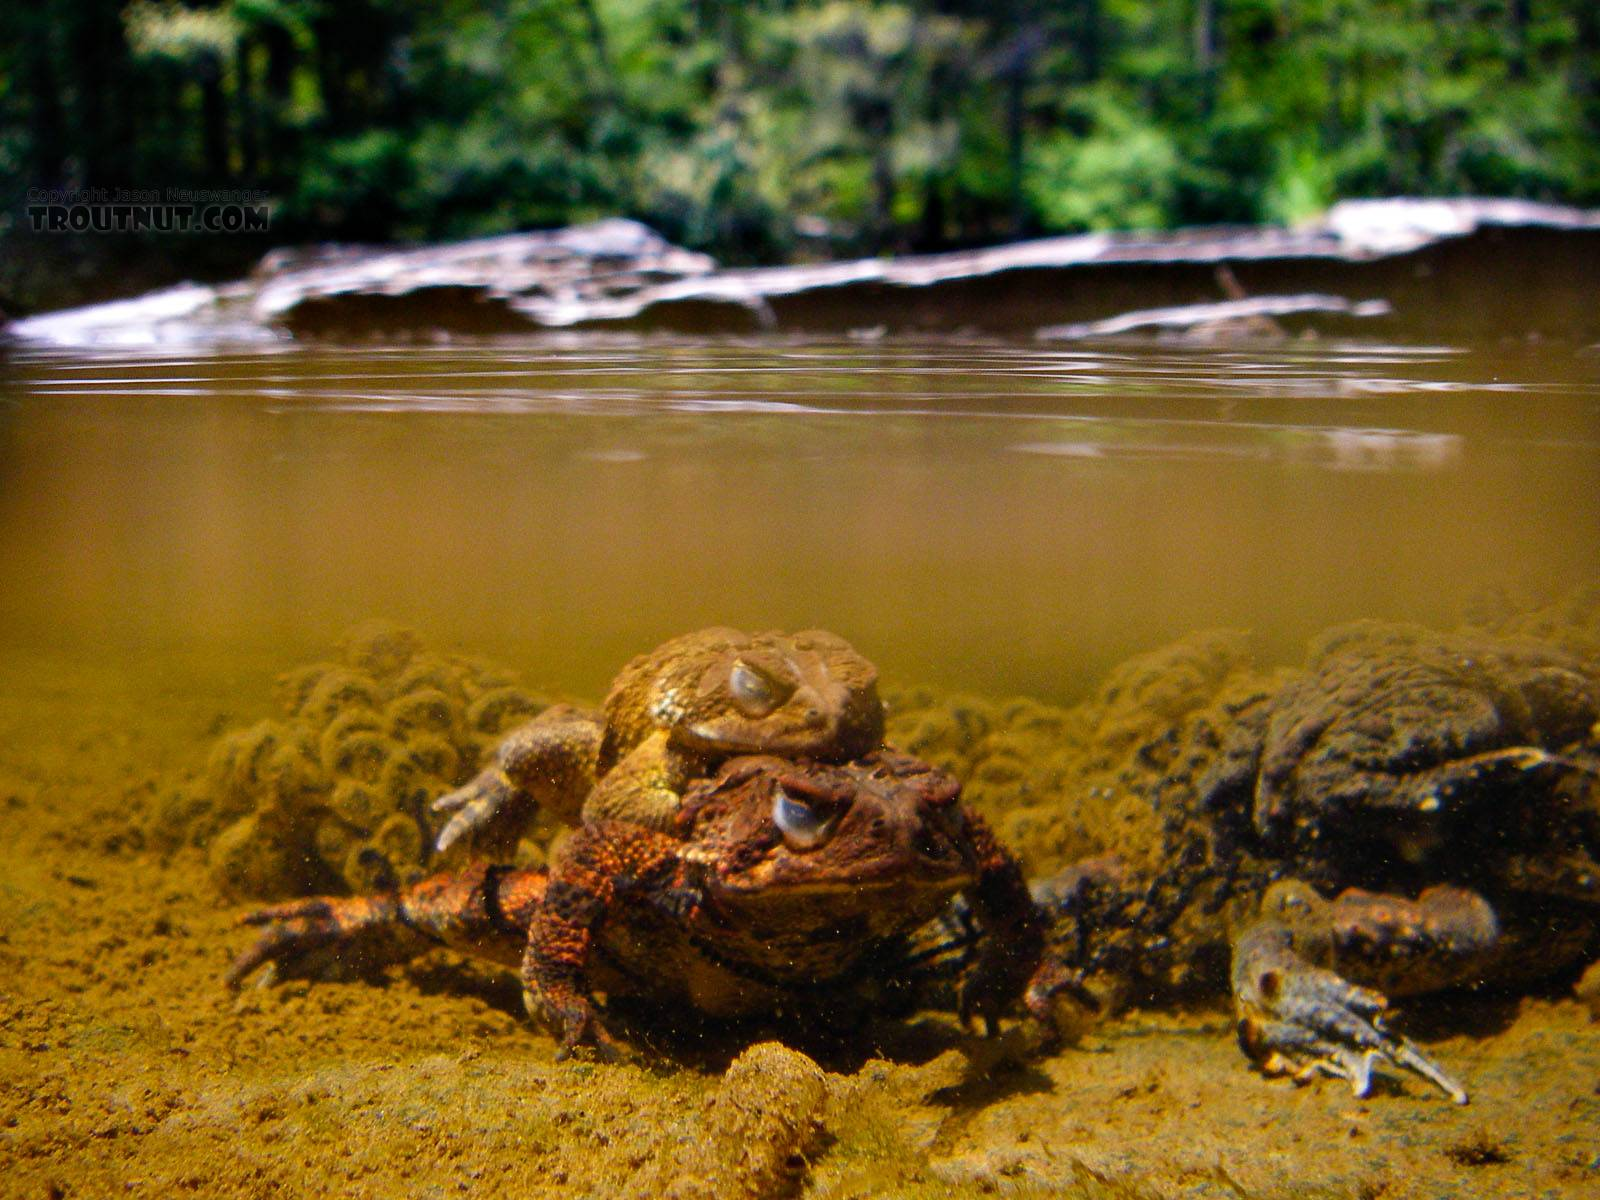 Mating toads and their eggs in the shallows. From the Neversink River Gorge in New York.